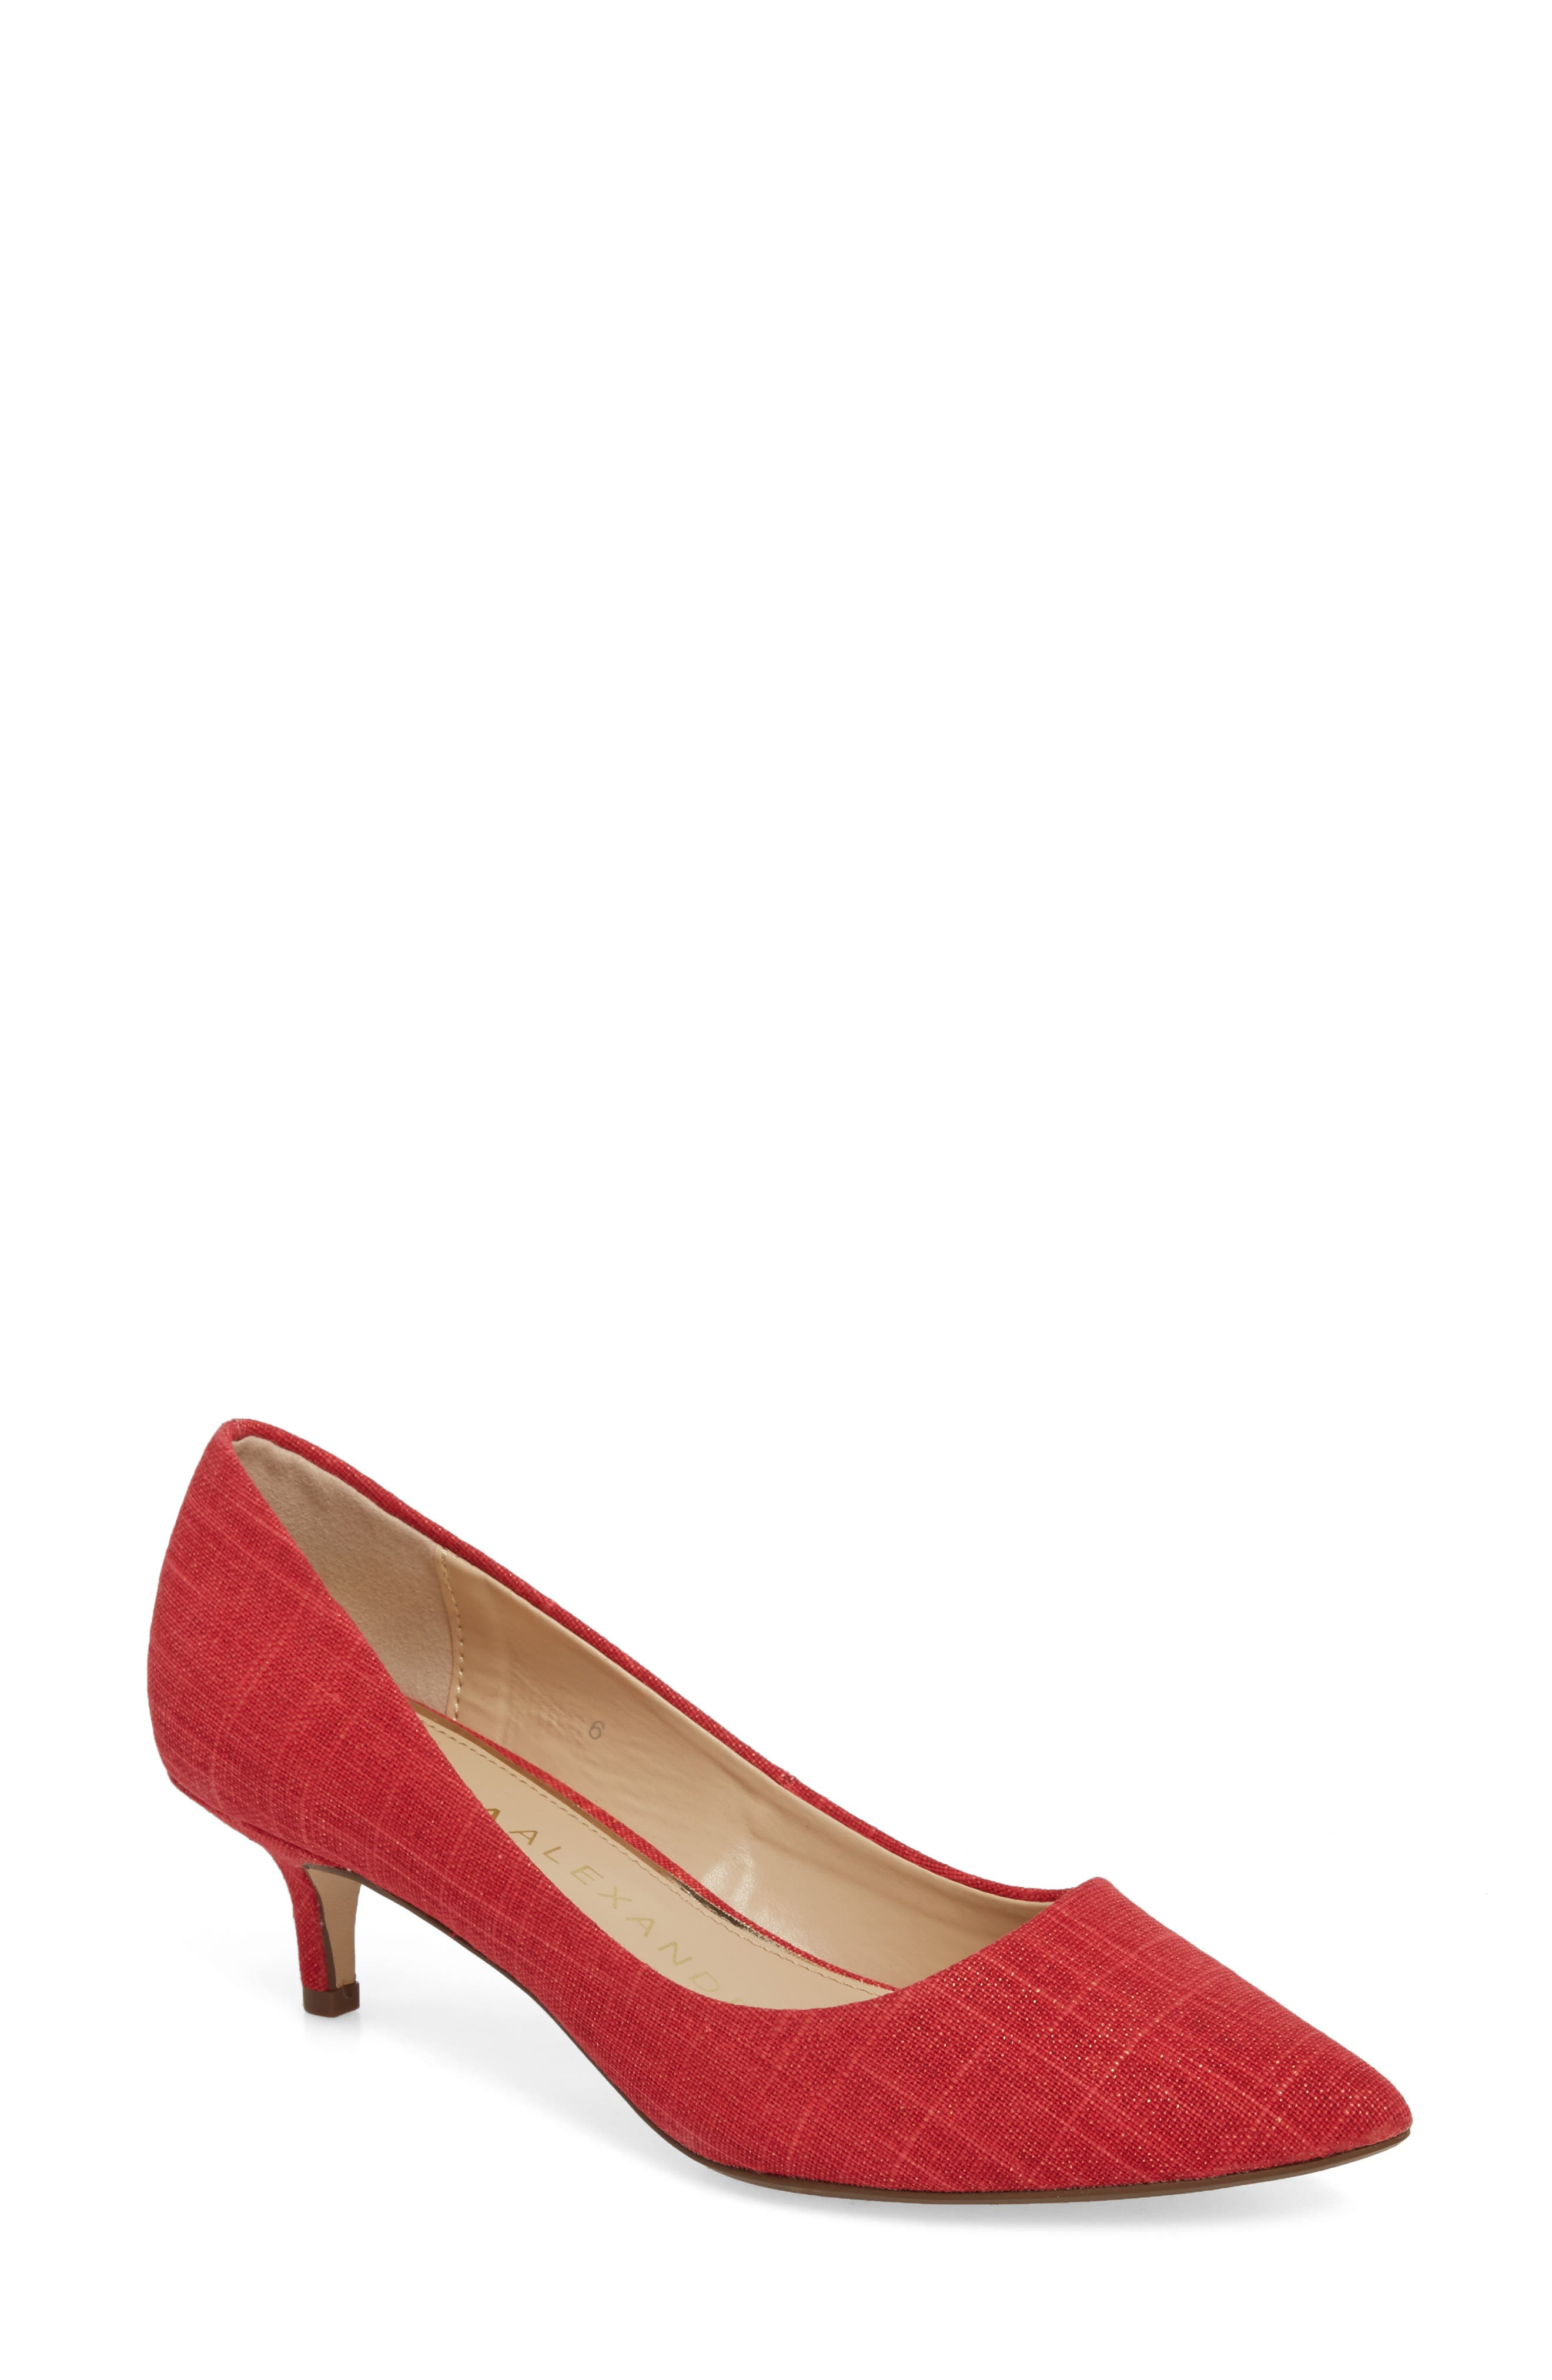 Target Kitten Heel Pump,                             Main thumbnail 1, color,                             Red Fabric